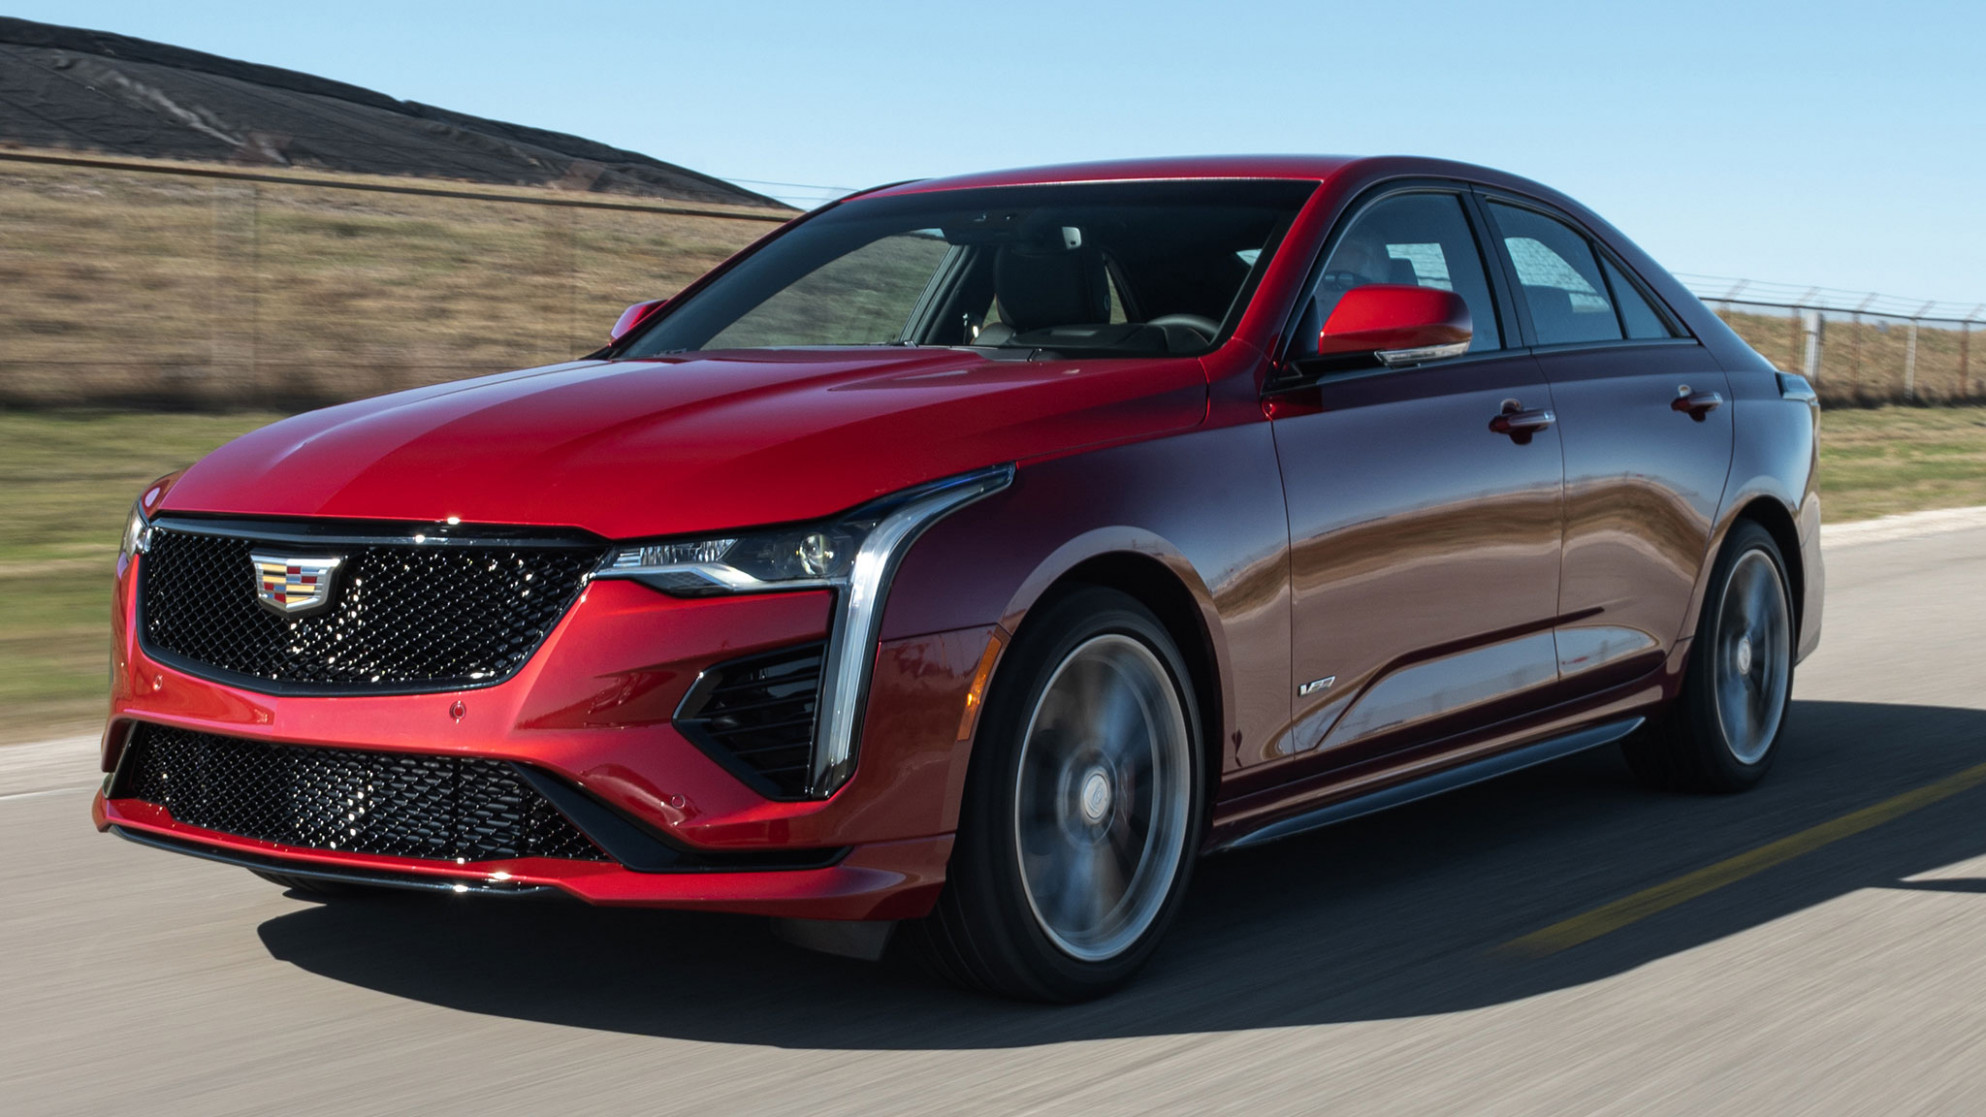 6 Cadillac CT6-V AWD First Test: The Caddy That Vigs - cadillac ct4 2020